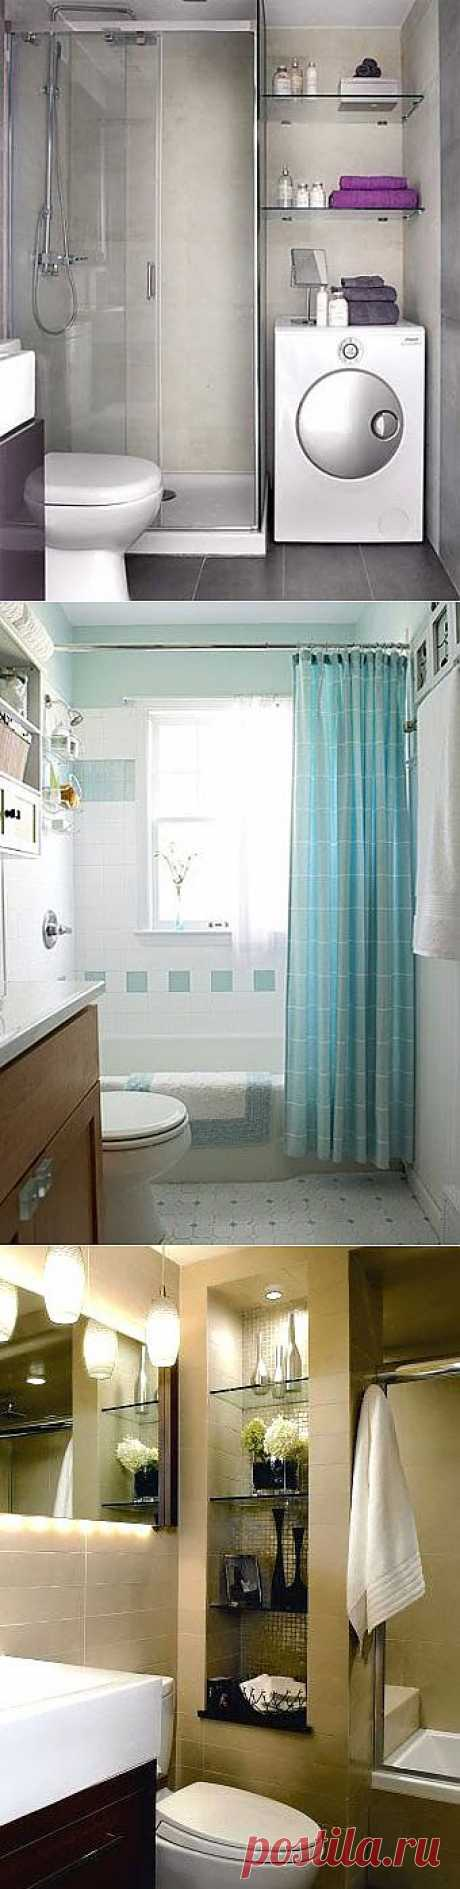 19 ways to visually increase a bathroom: local lighting, special walls painting...